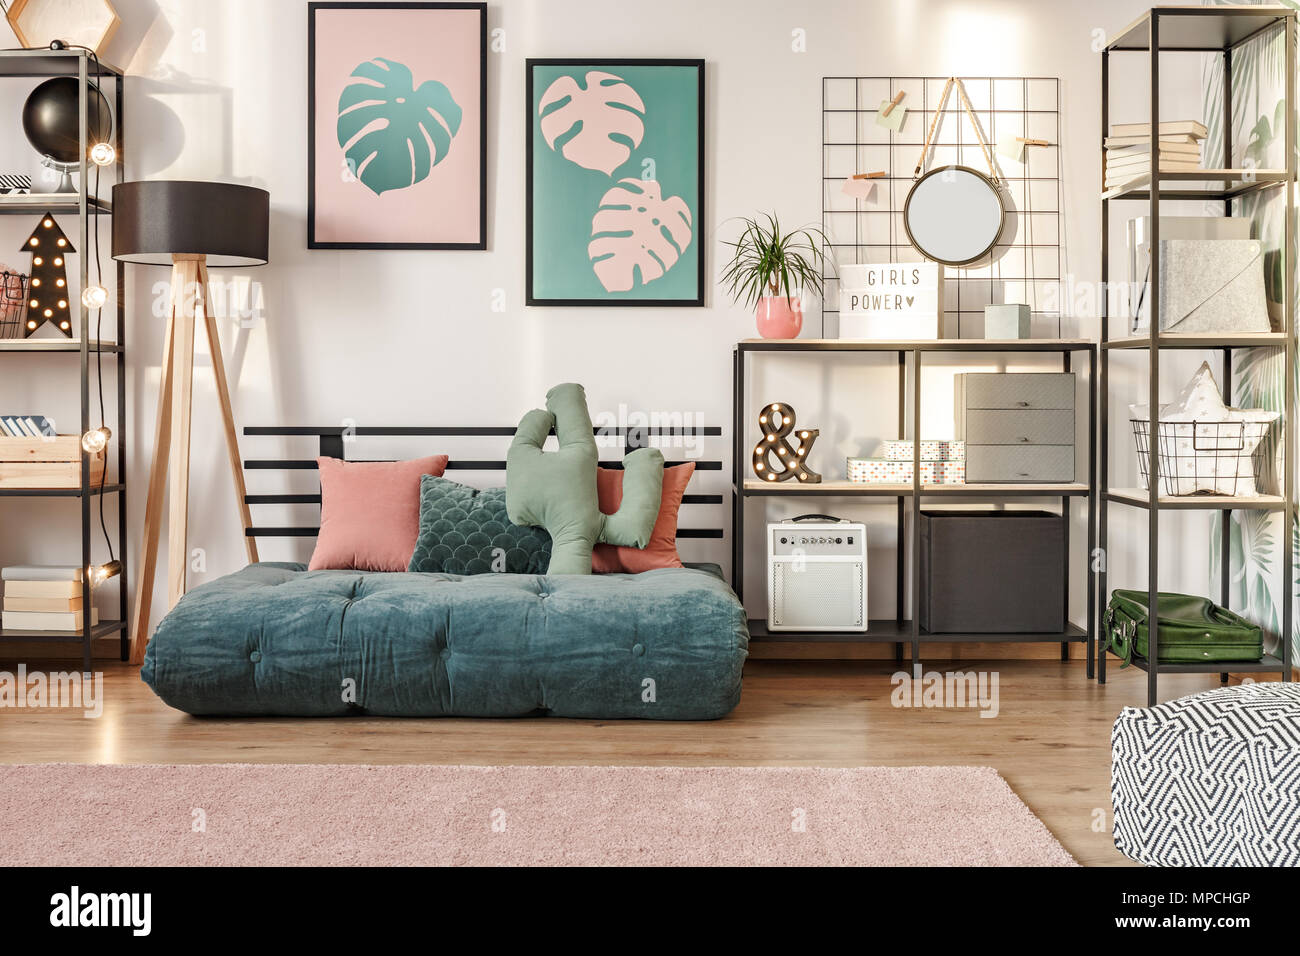 Emerald mattress with a cactus shape pillow, metal shelves and botanical posters in a modern living room interior Stock Photo